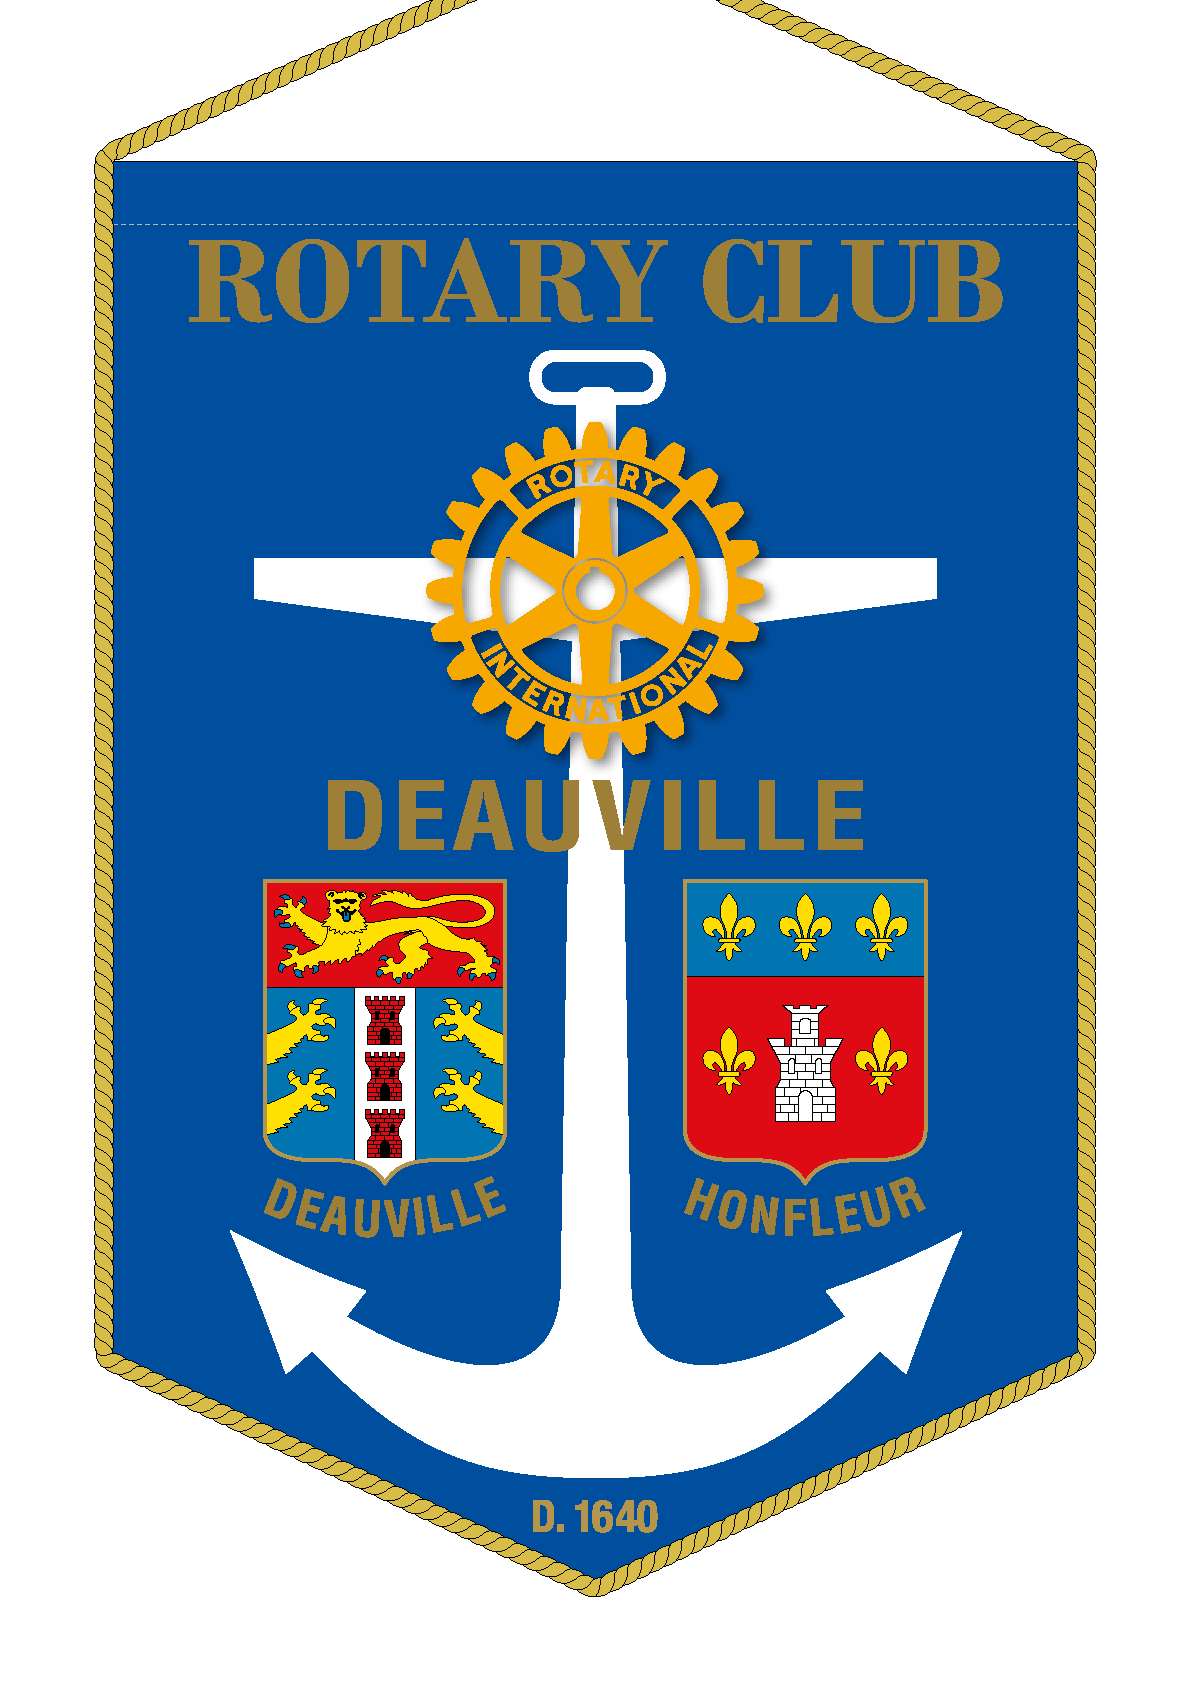 FANION ROTARY CLUB DEAUVILLE